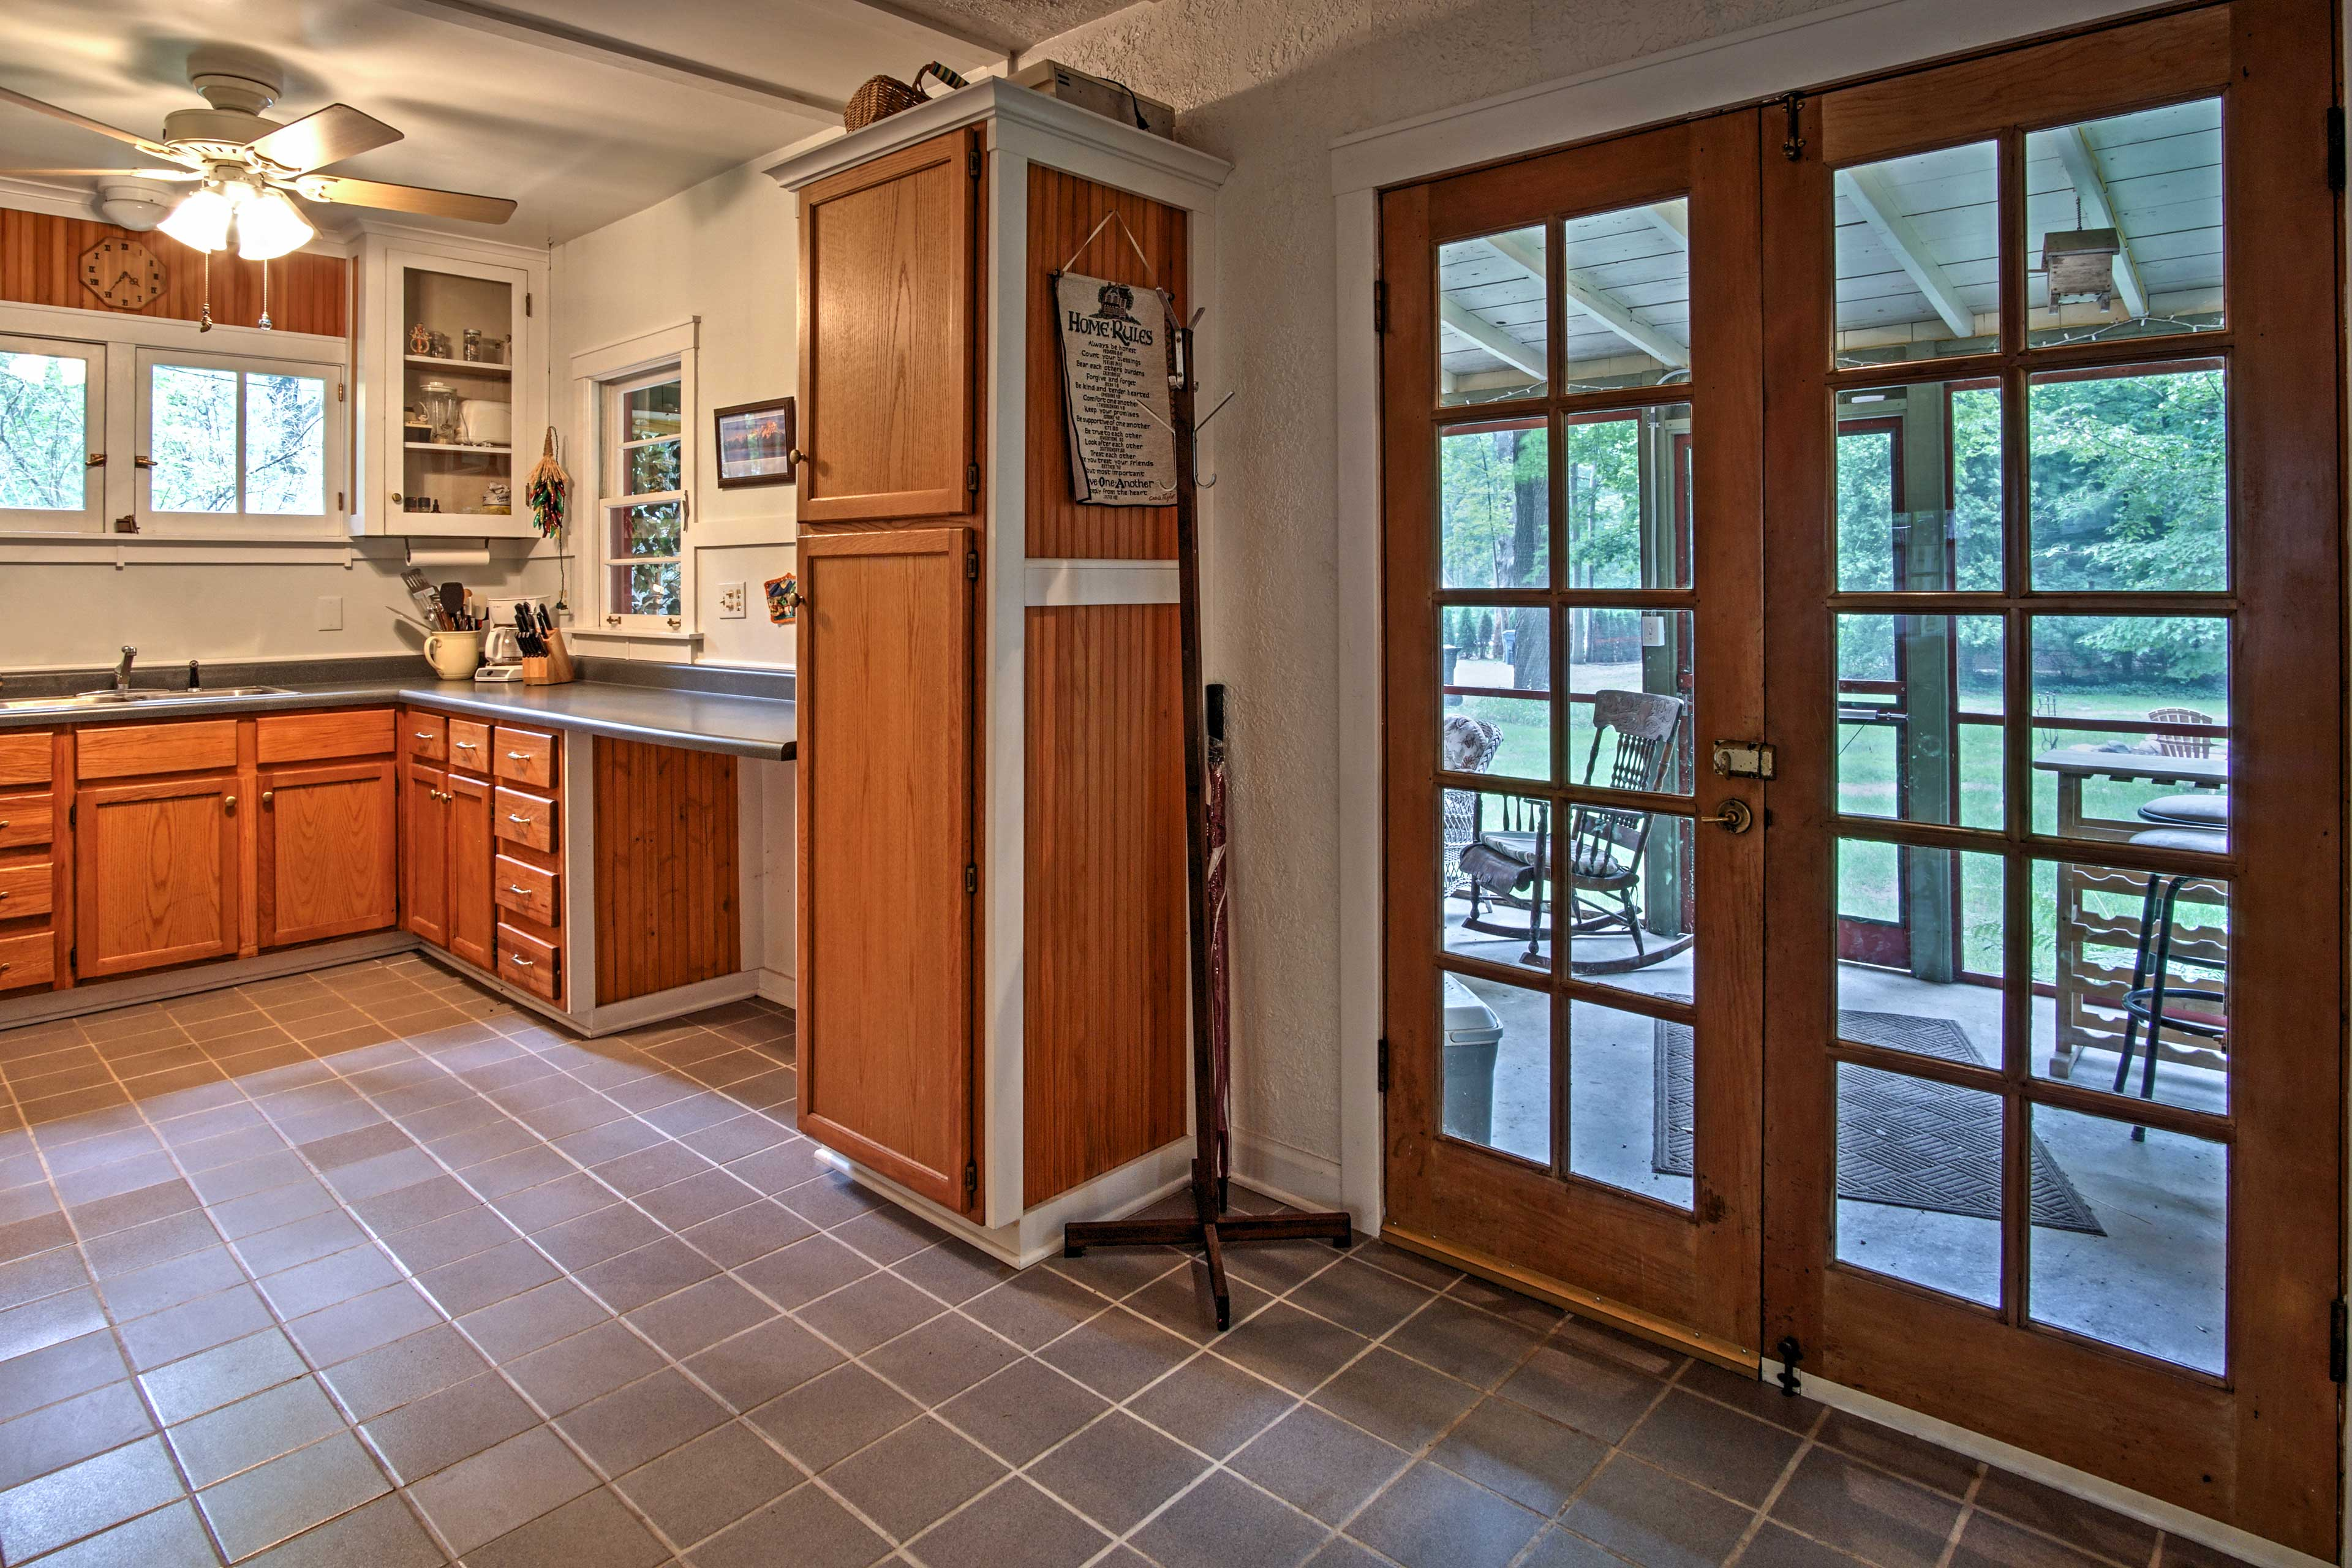 Just off of the kitchen is the screened-in porch.